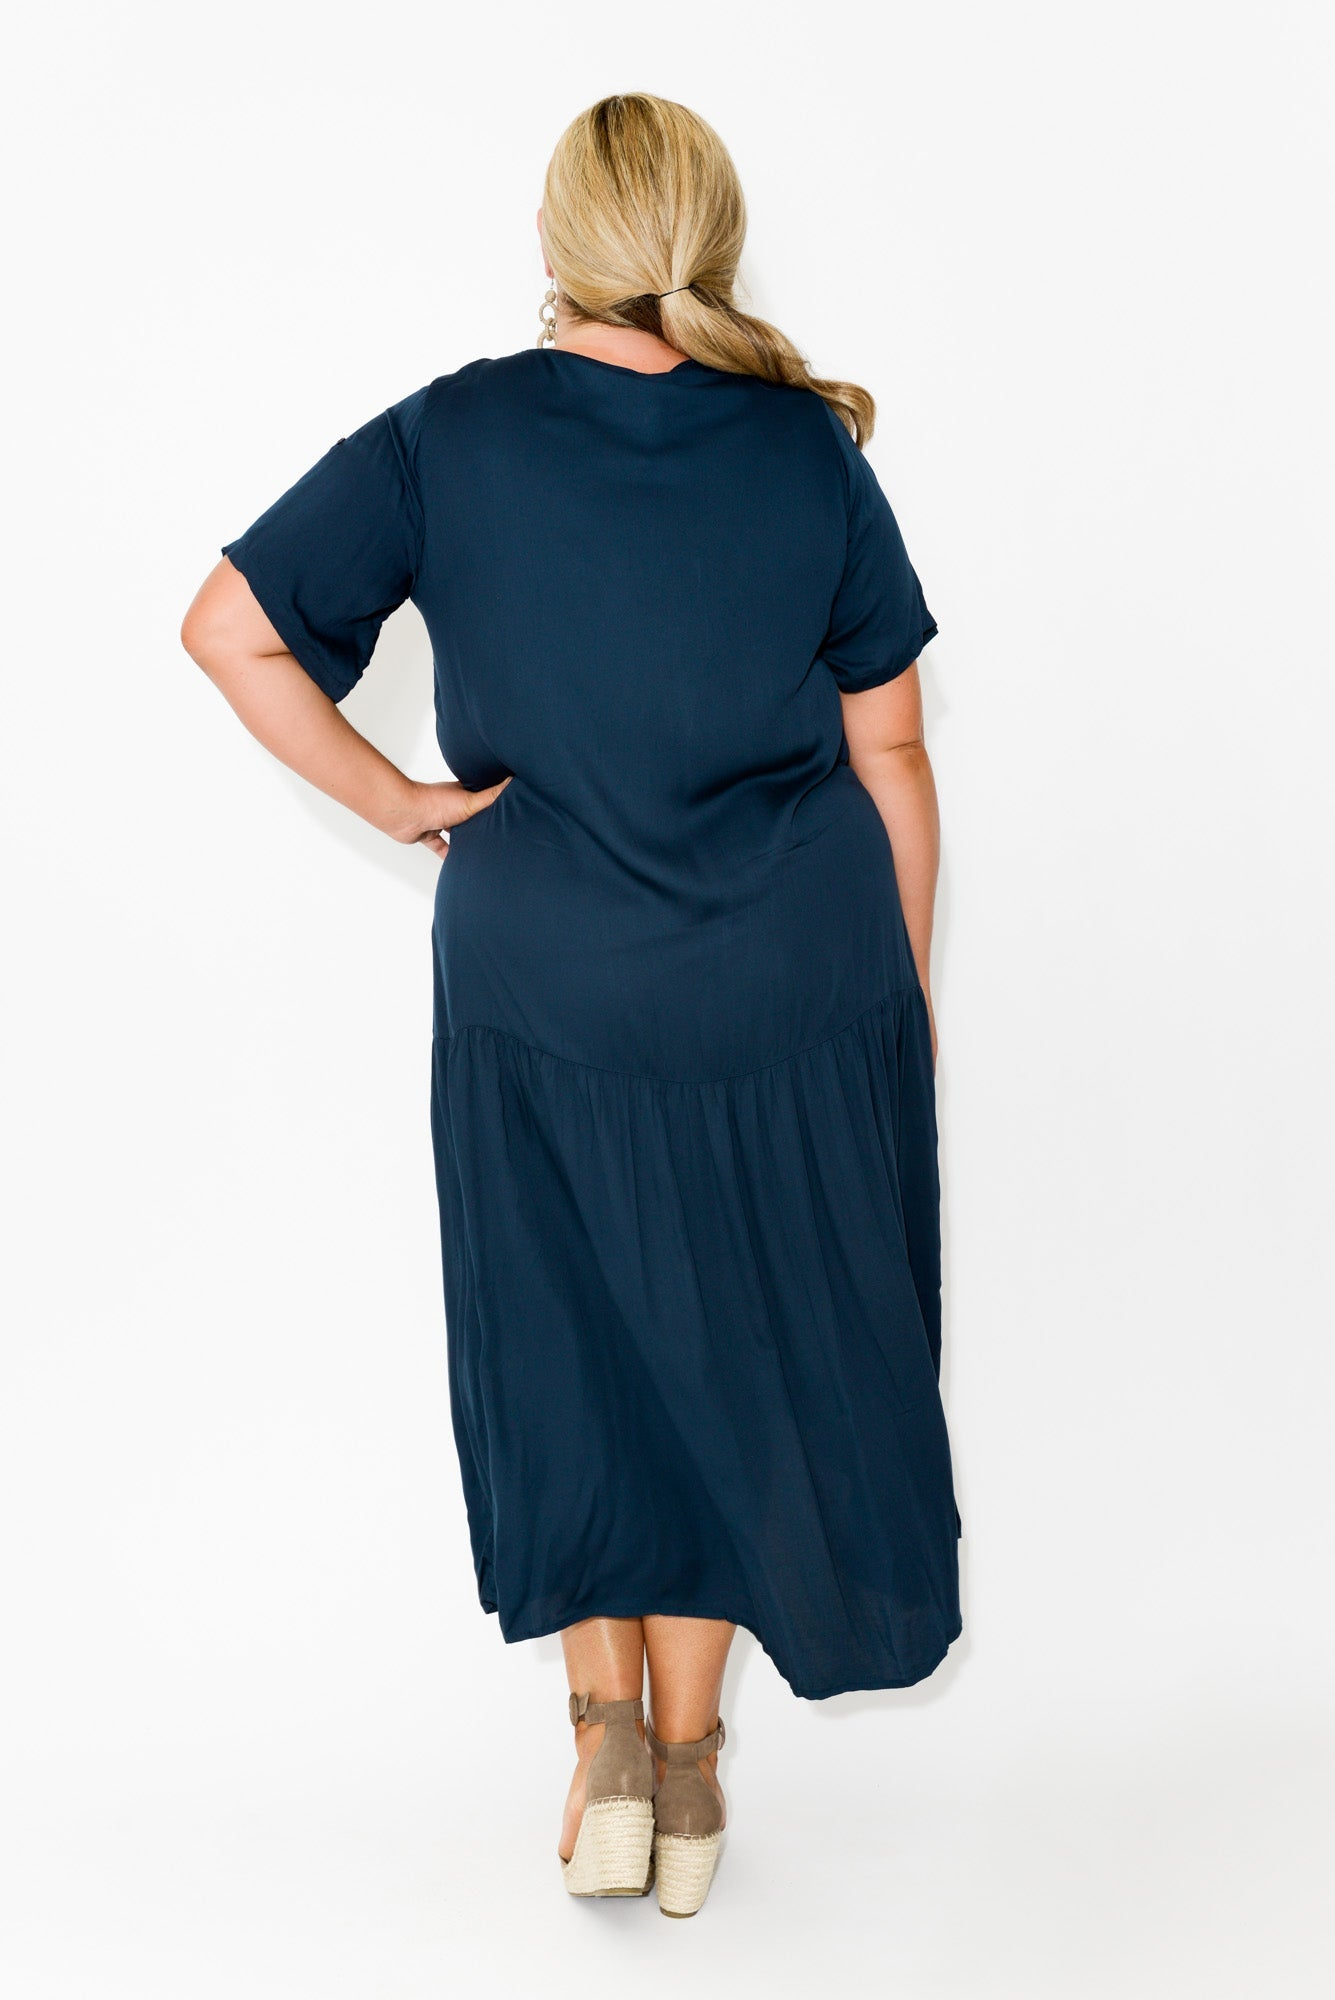 Navy Sateen Peak Maxi Dress